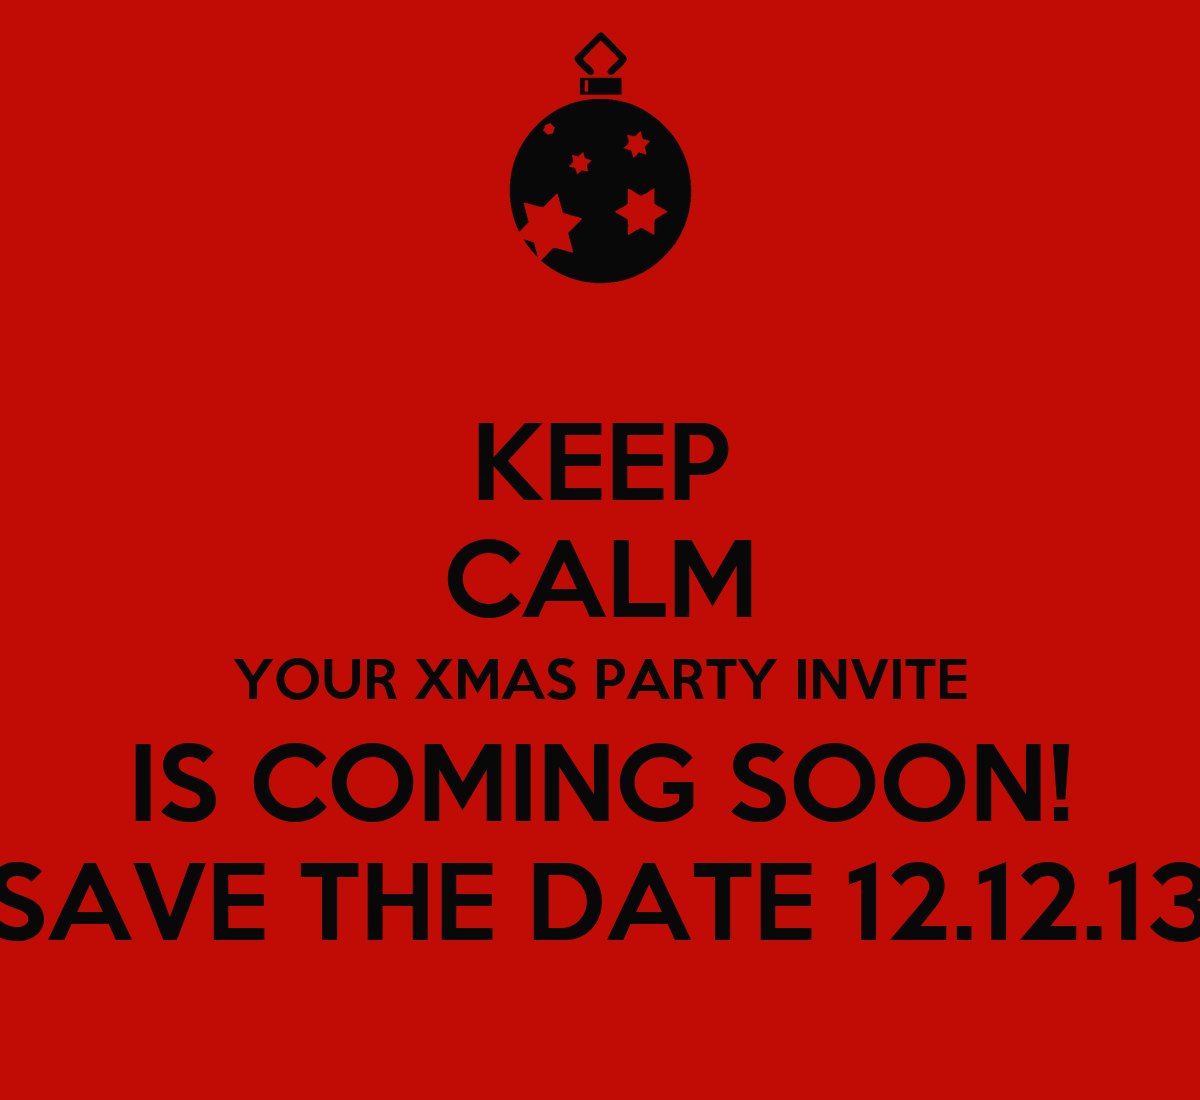 KEEP CALM YOUR XMAS PARTY INVITE IS COMING SOON! SAVE THE DATE ...